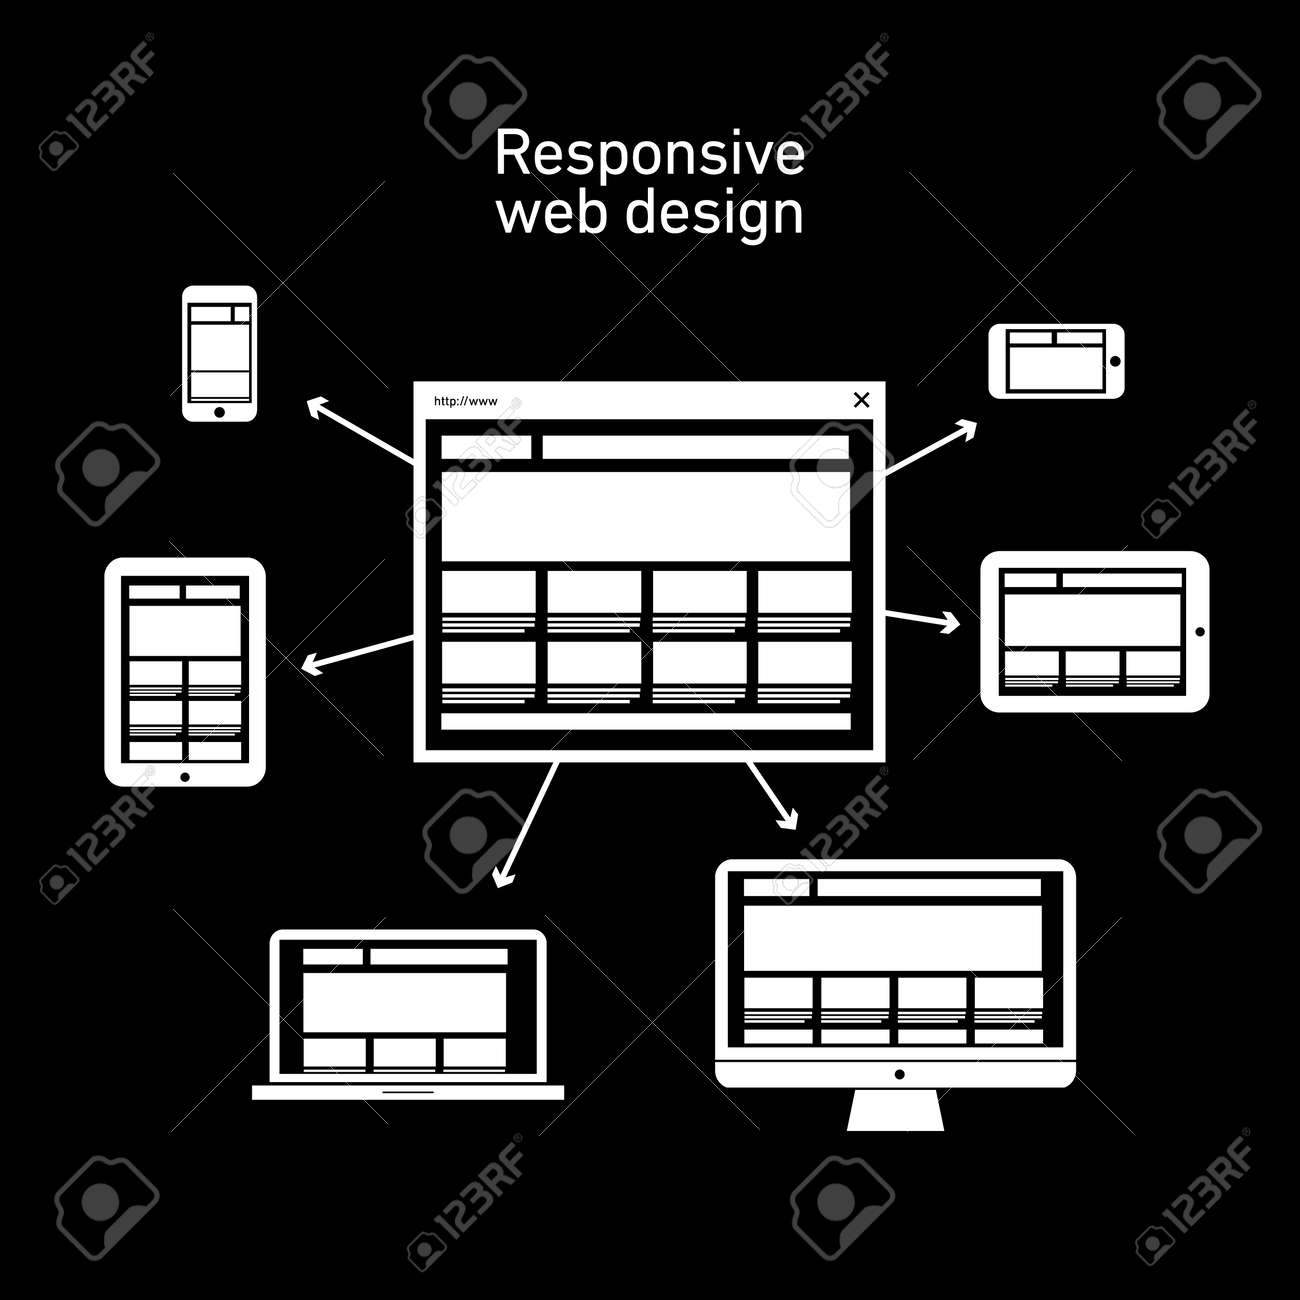 responsive web design scheme on different devices and platforms | vector flat design infographic white on black background Stock Vector - 27595620